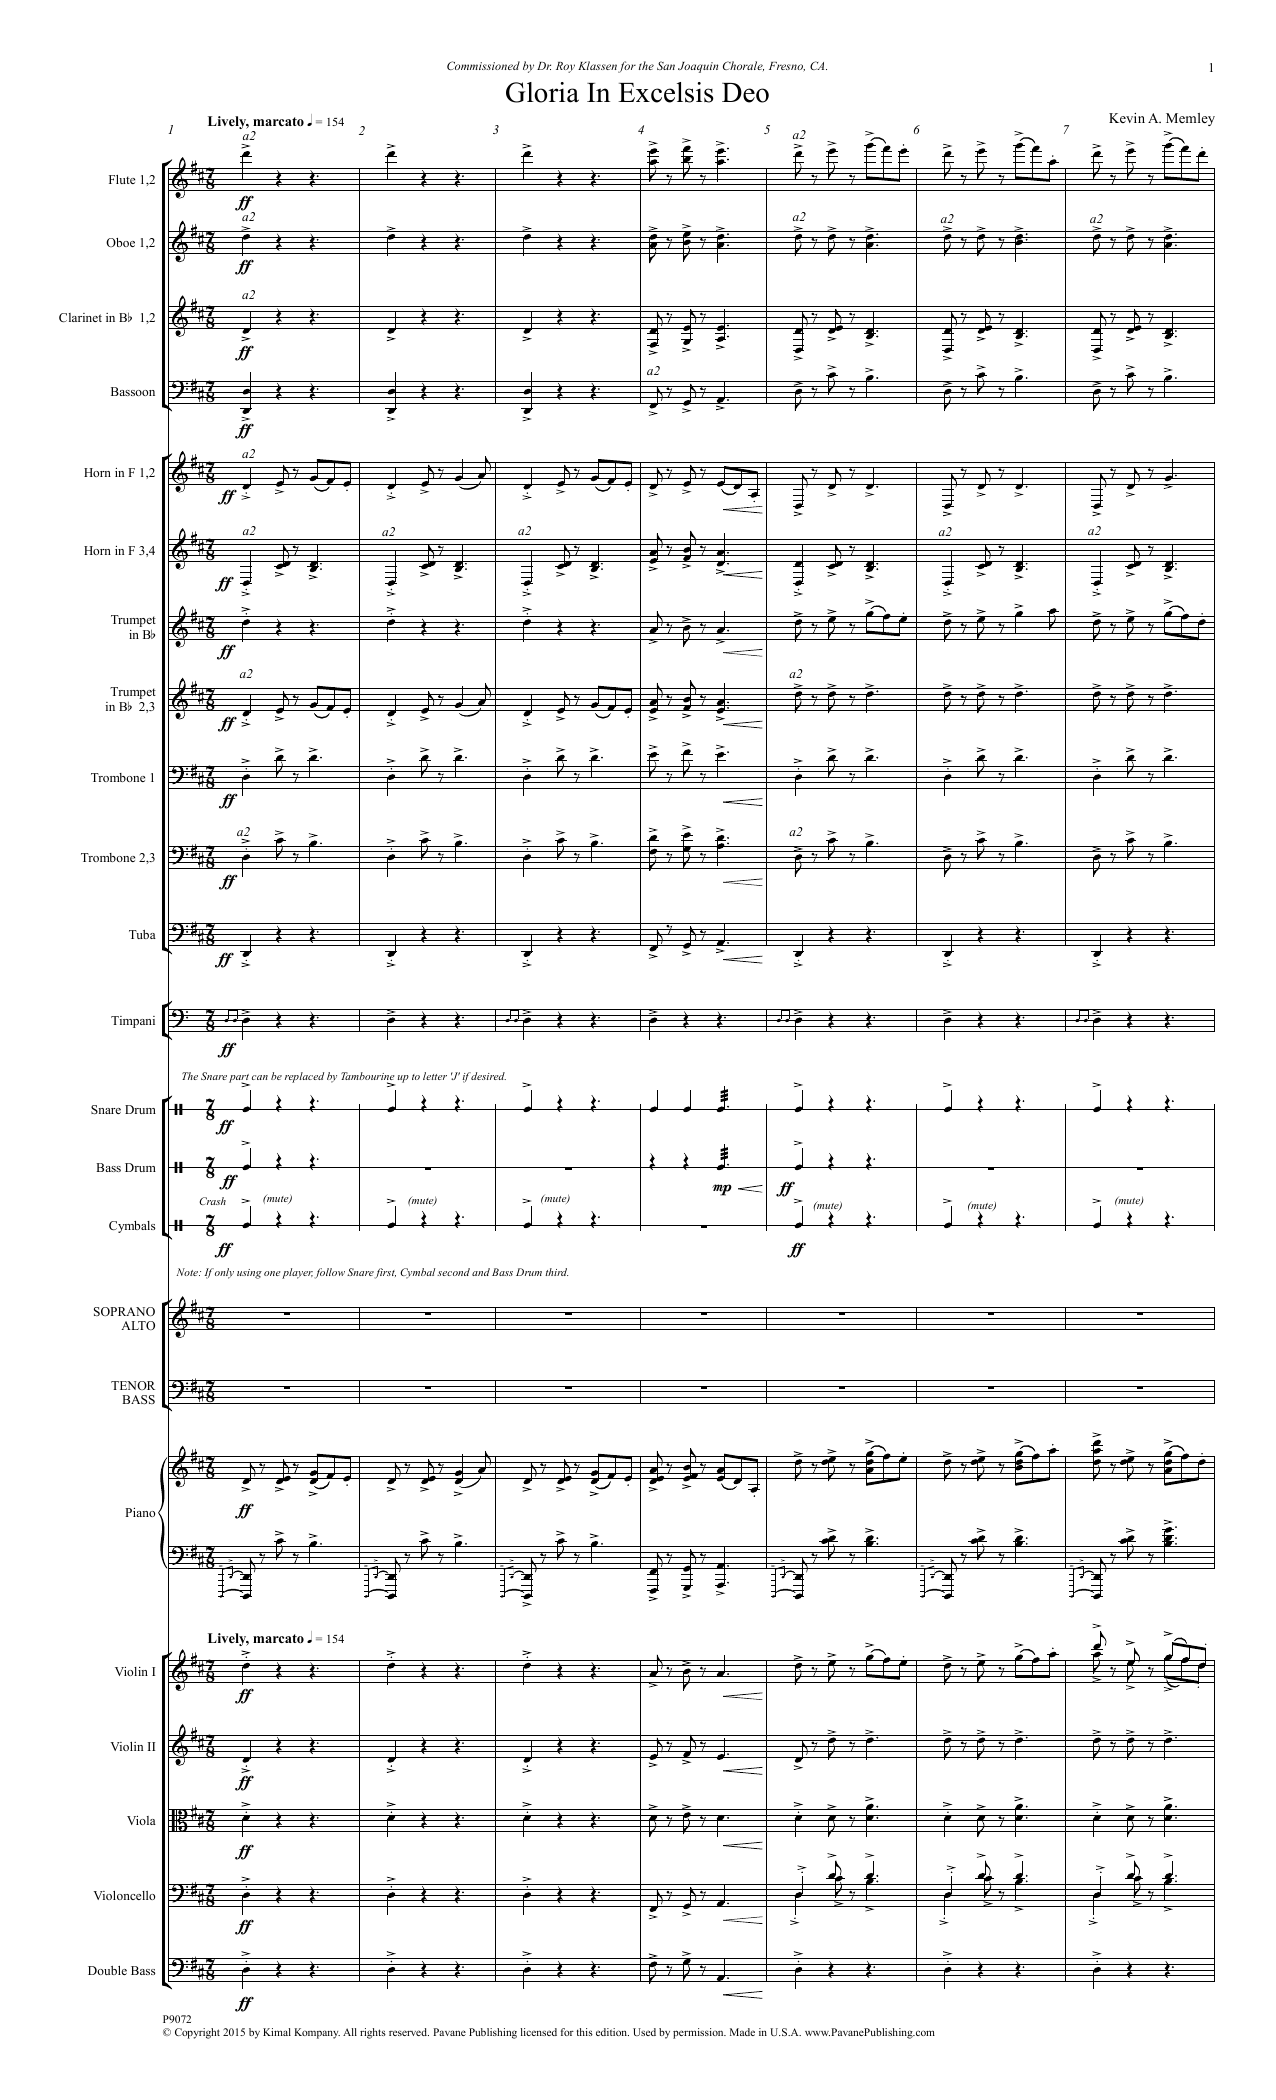 Kevin A. Memley - Gloria in Excelsis Deo - Full Score